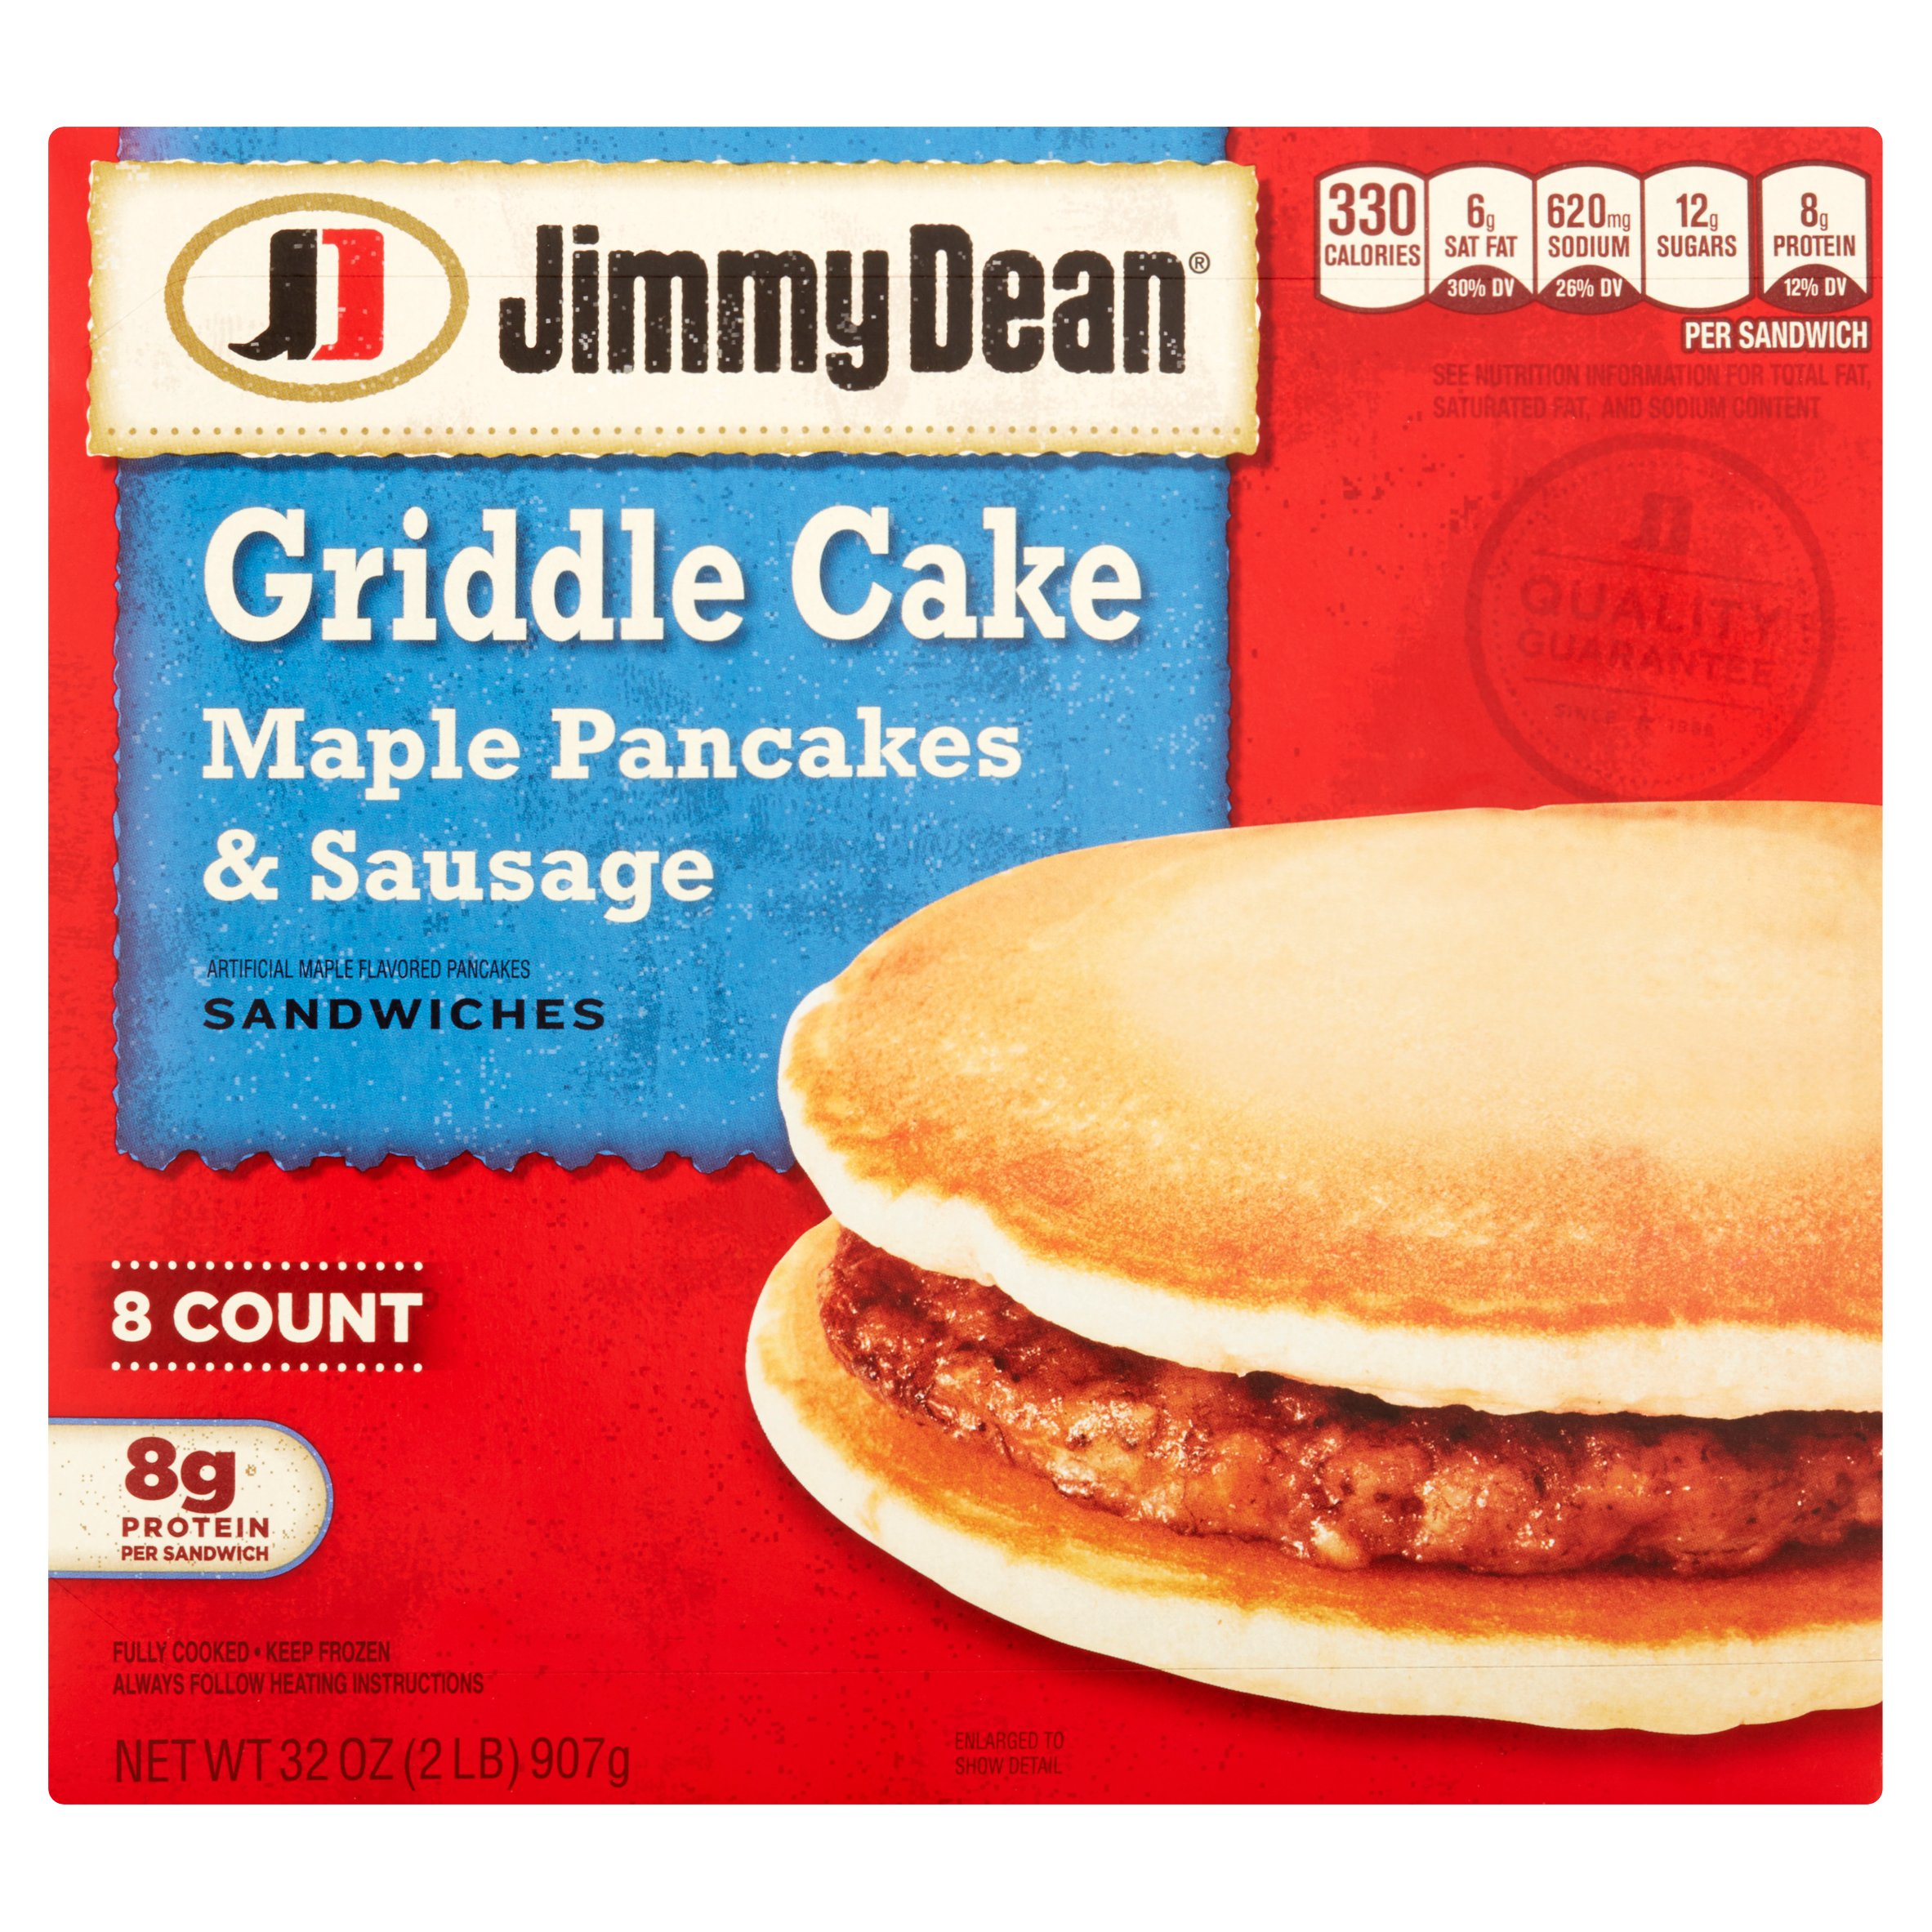 Jimmy Dean Griddle Cake Maple Pancakes & Sausage Sandwiches, 8 count, 32 oz